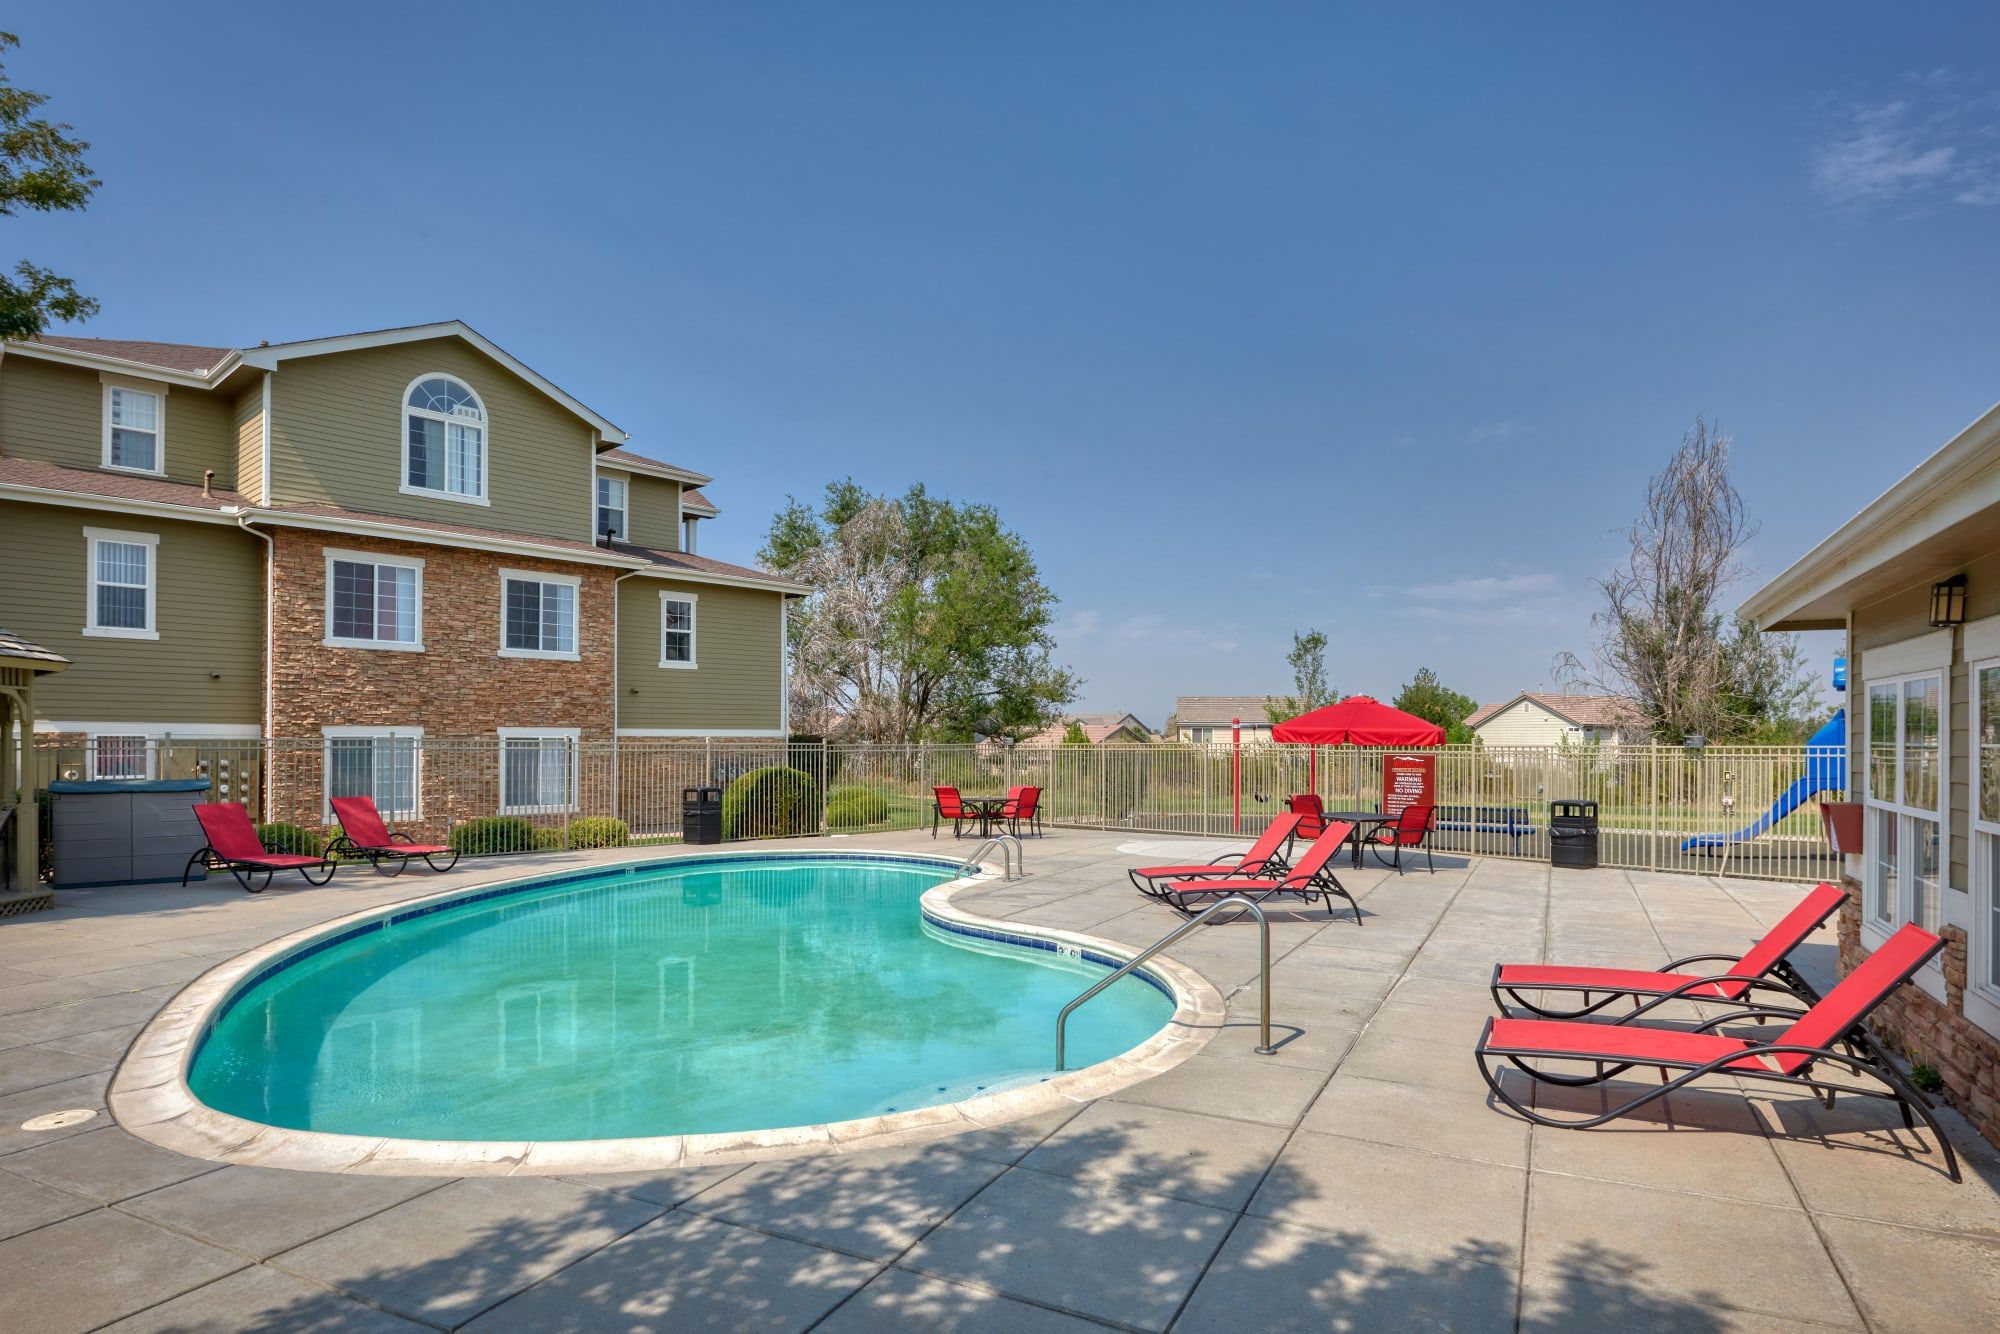 Pool and spa with lounge chairs and umbrellas at Westridge Apartments in Aurora, Colorado